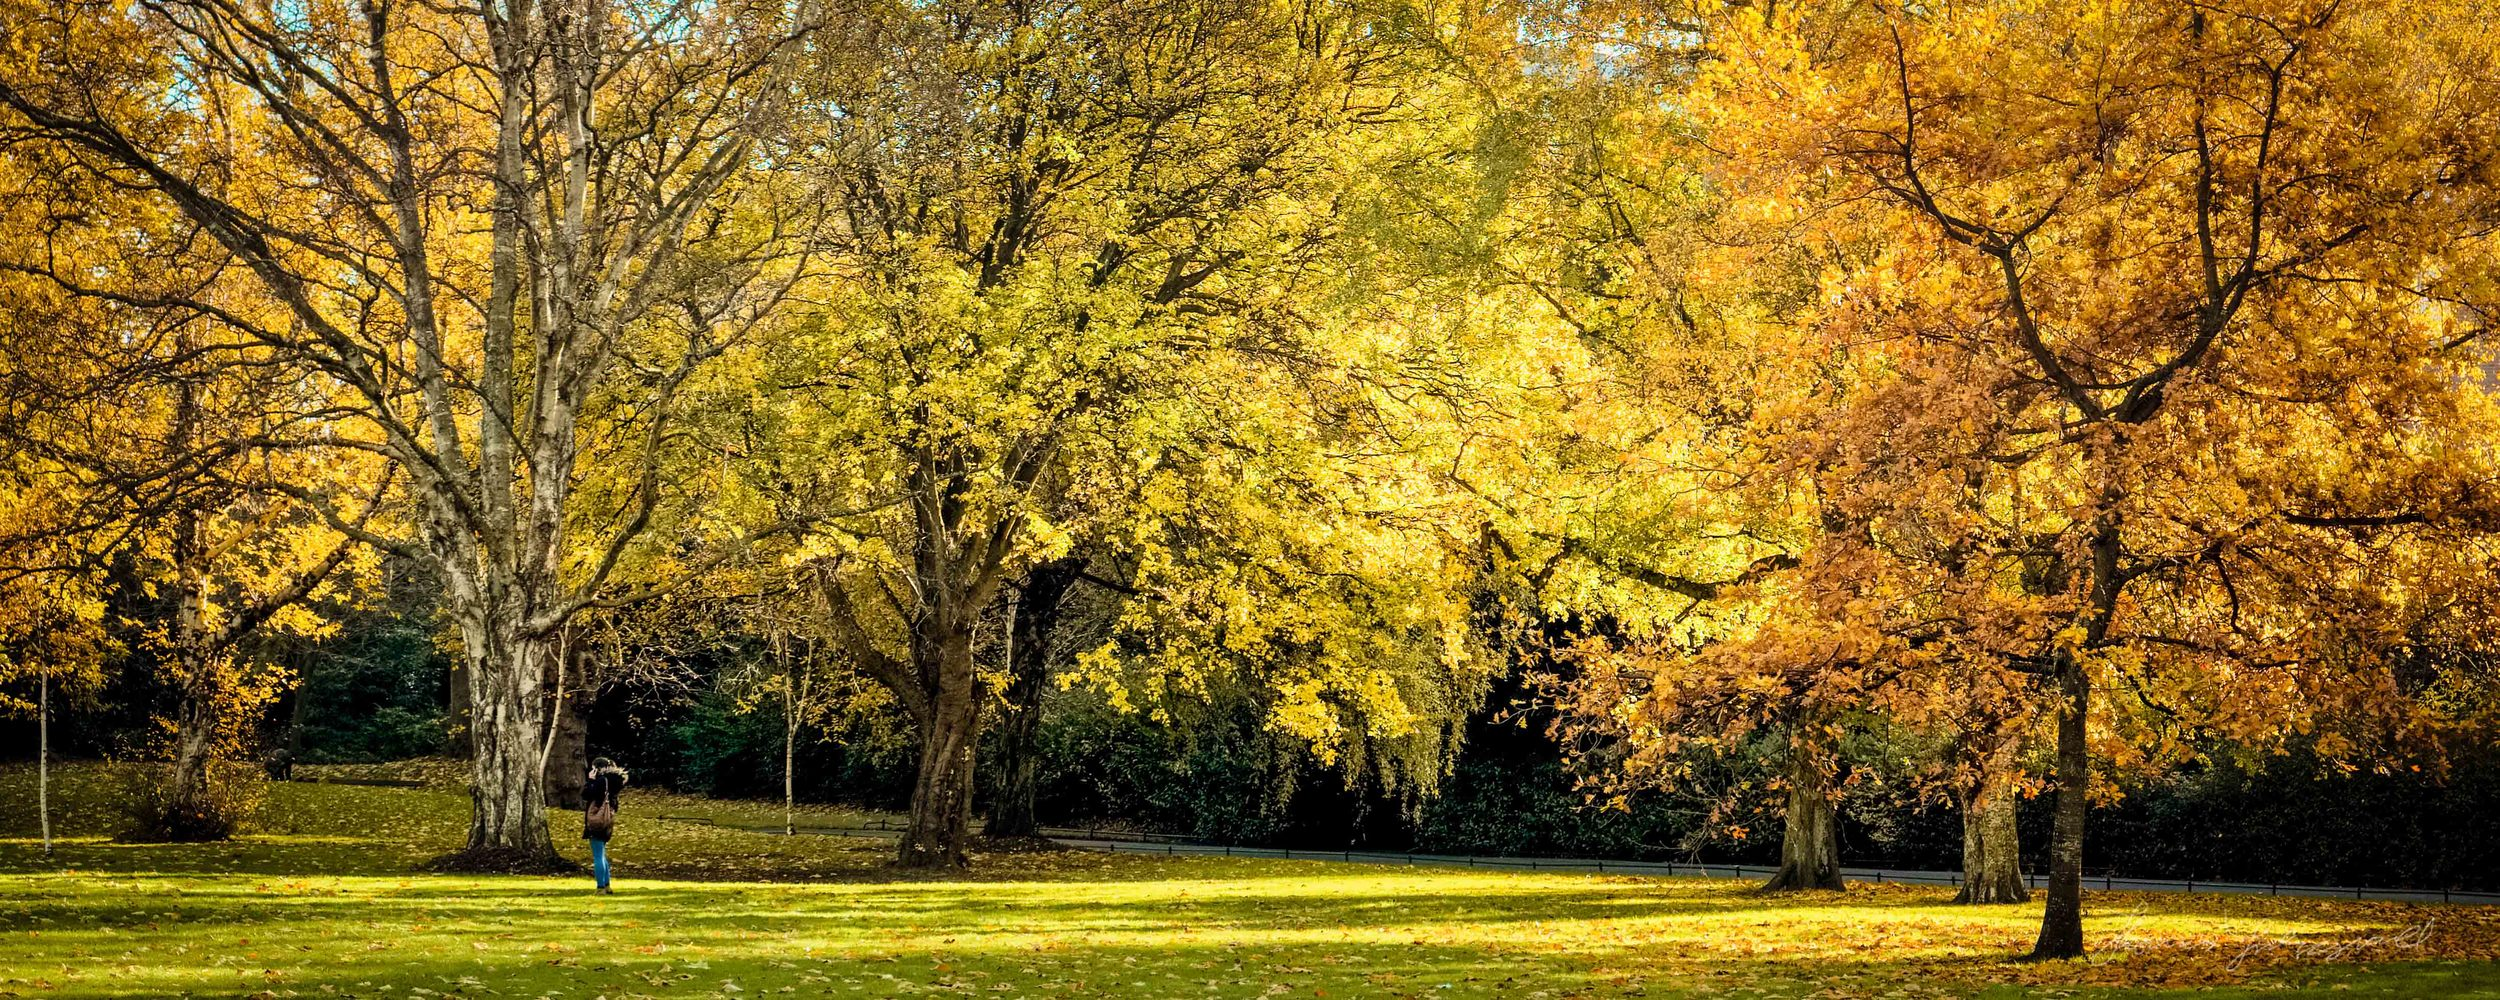 Tree lined panorama - Taken with a Fuji XE1